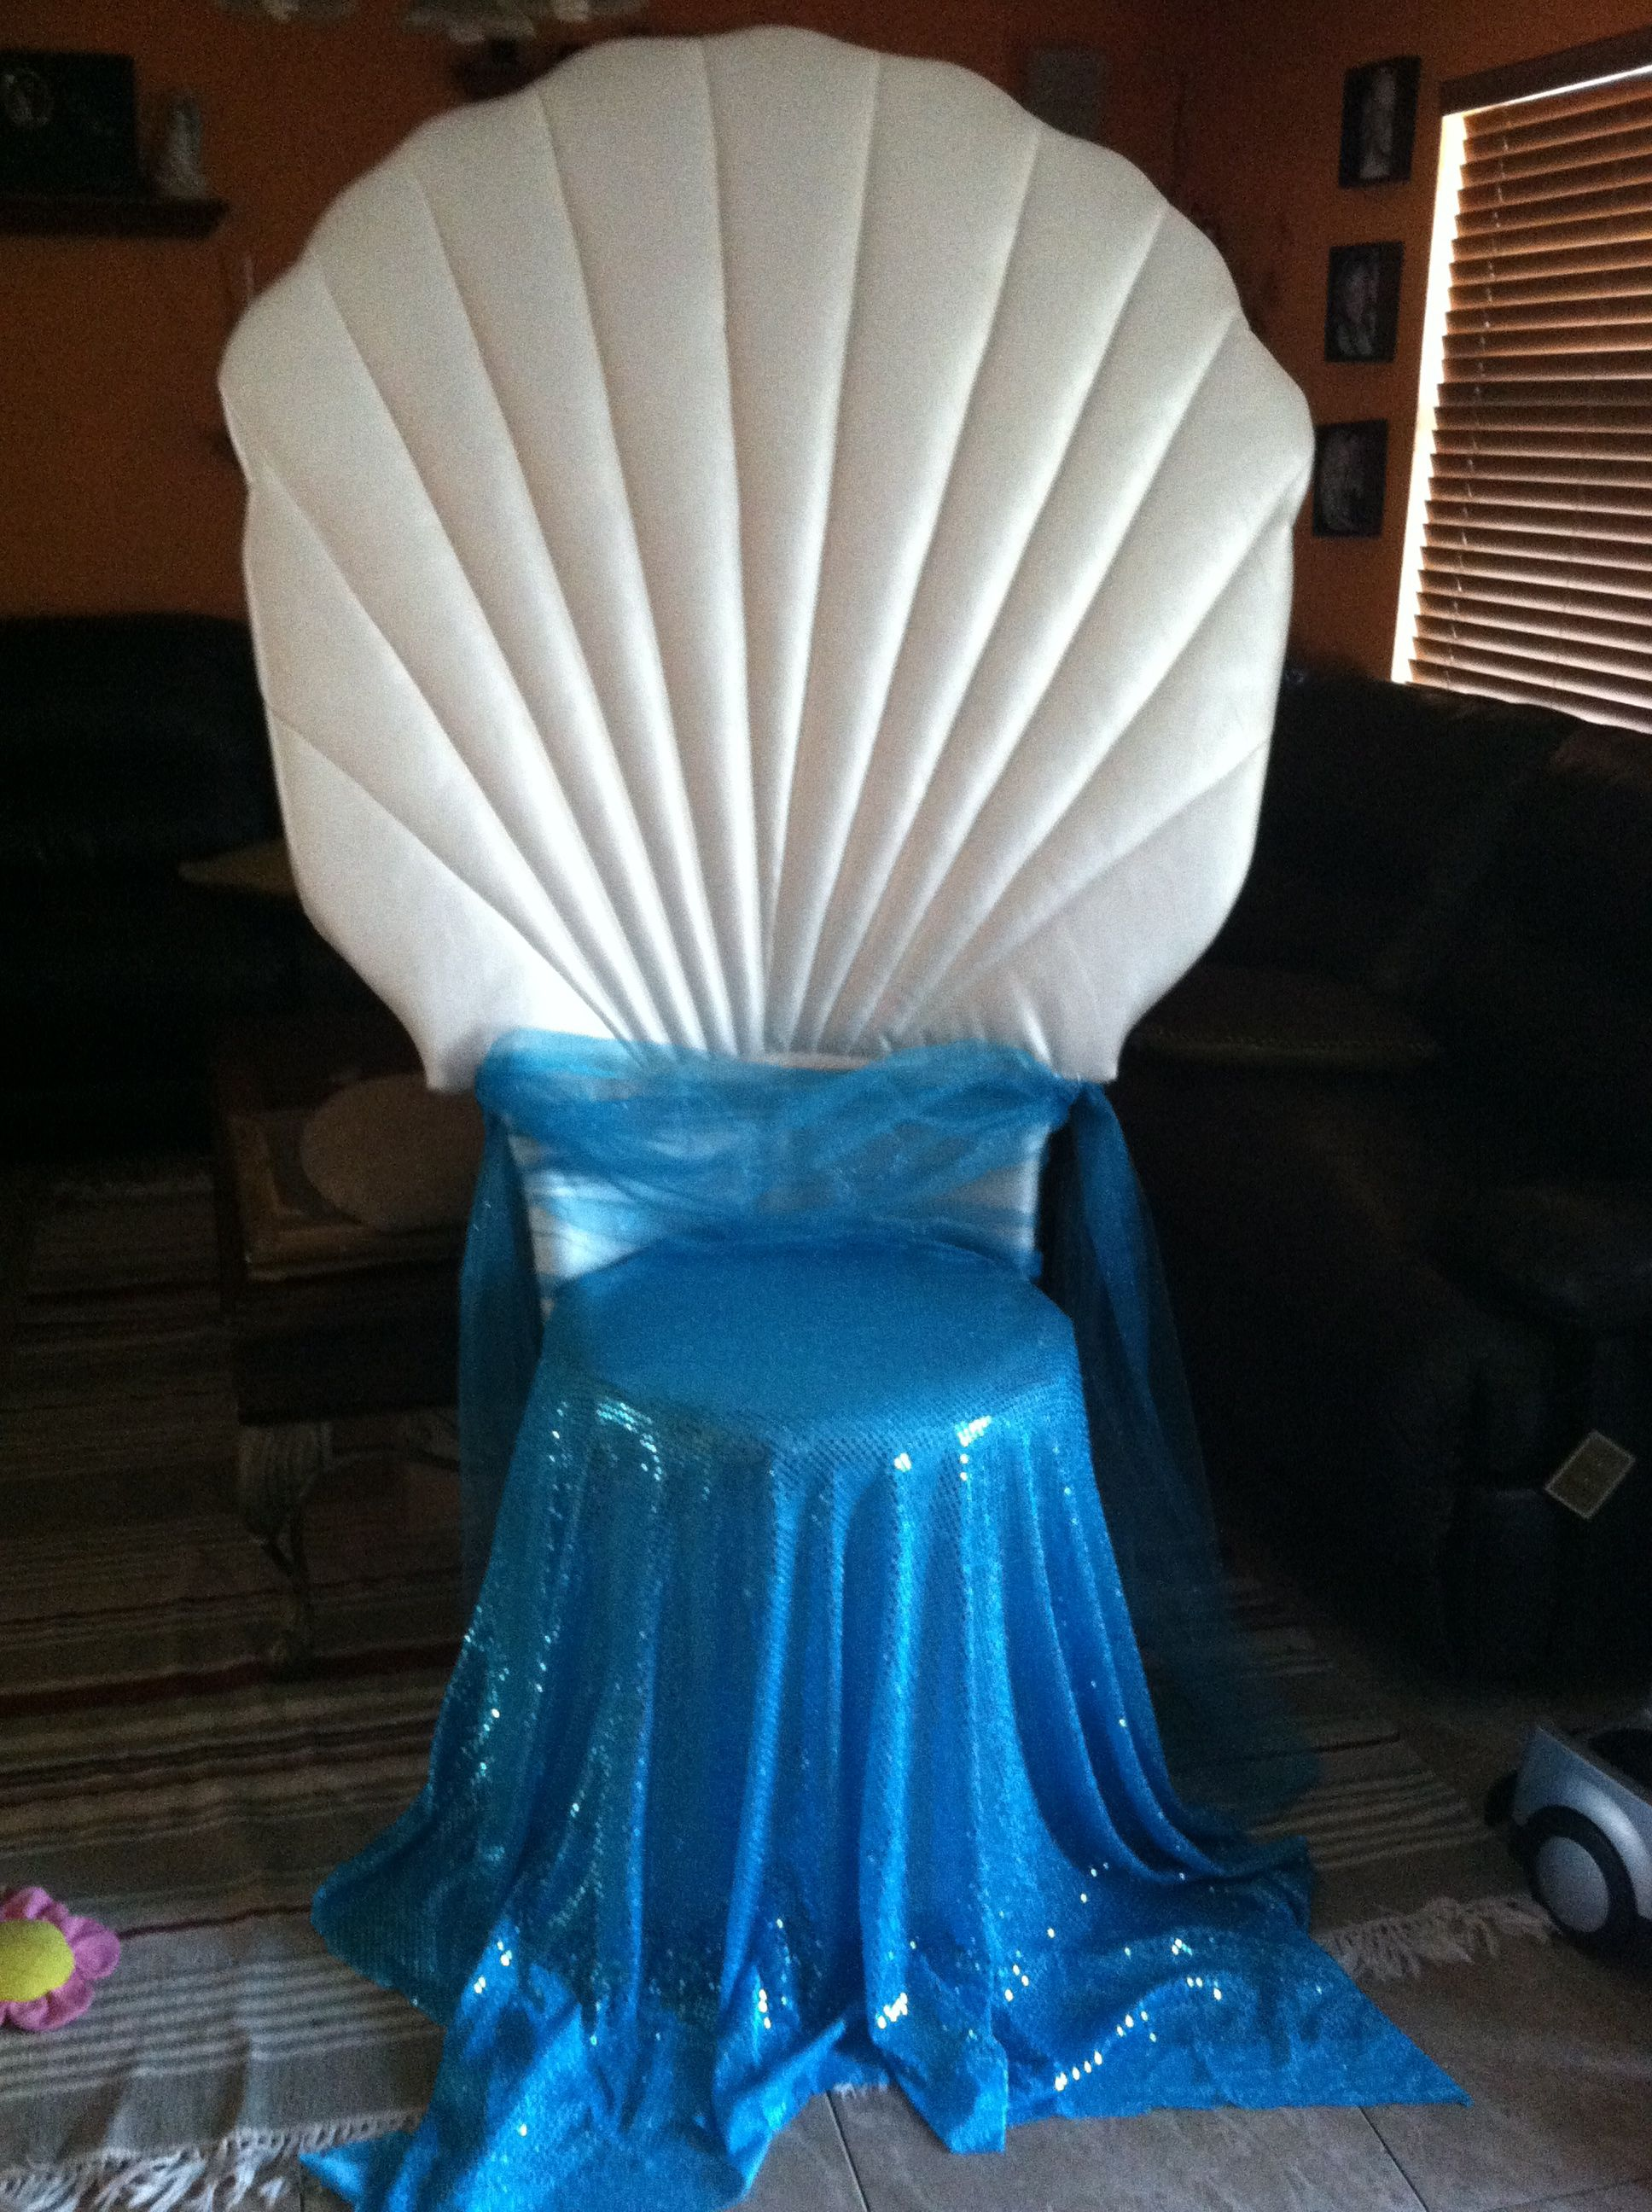 The Mermaid Chair Rocking Chairs For Baby Room Clam Available Local Rental Under Sea